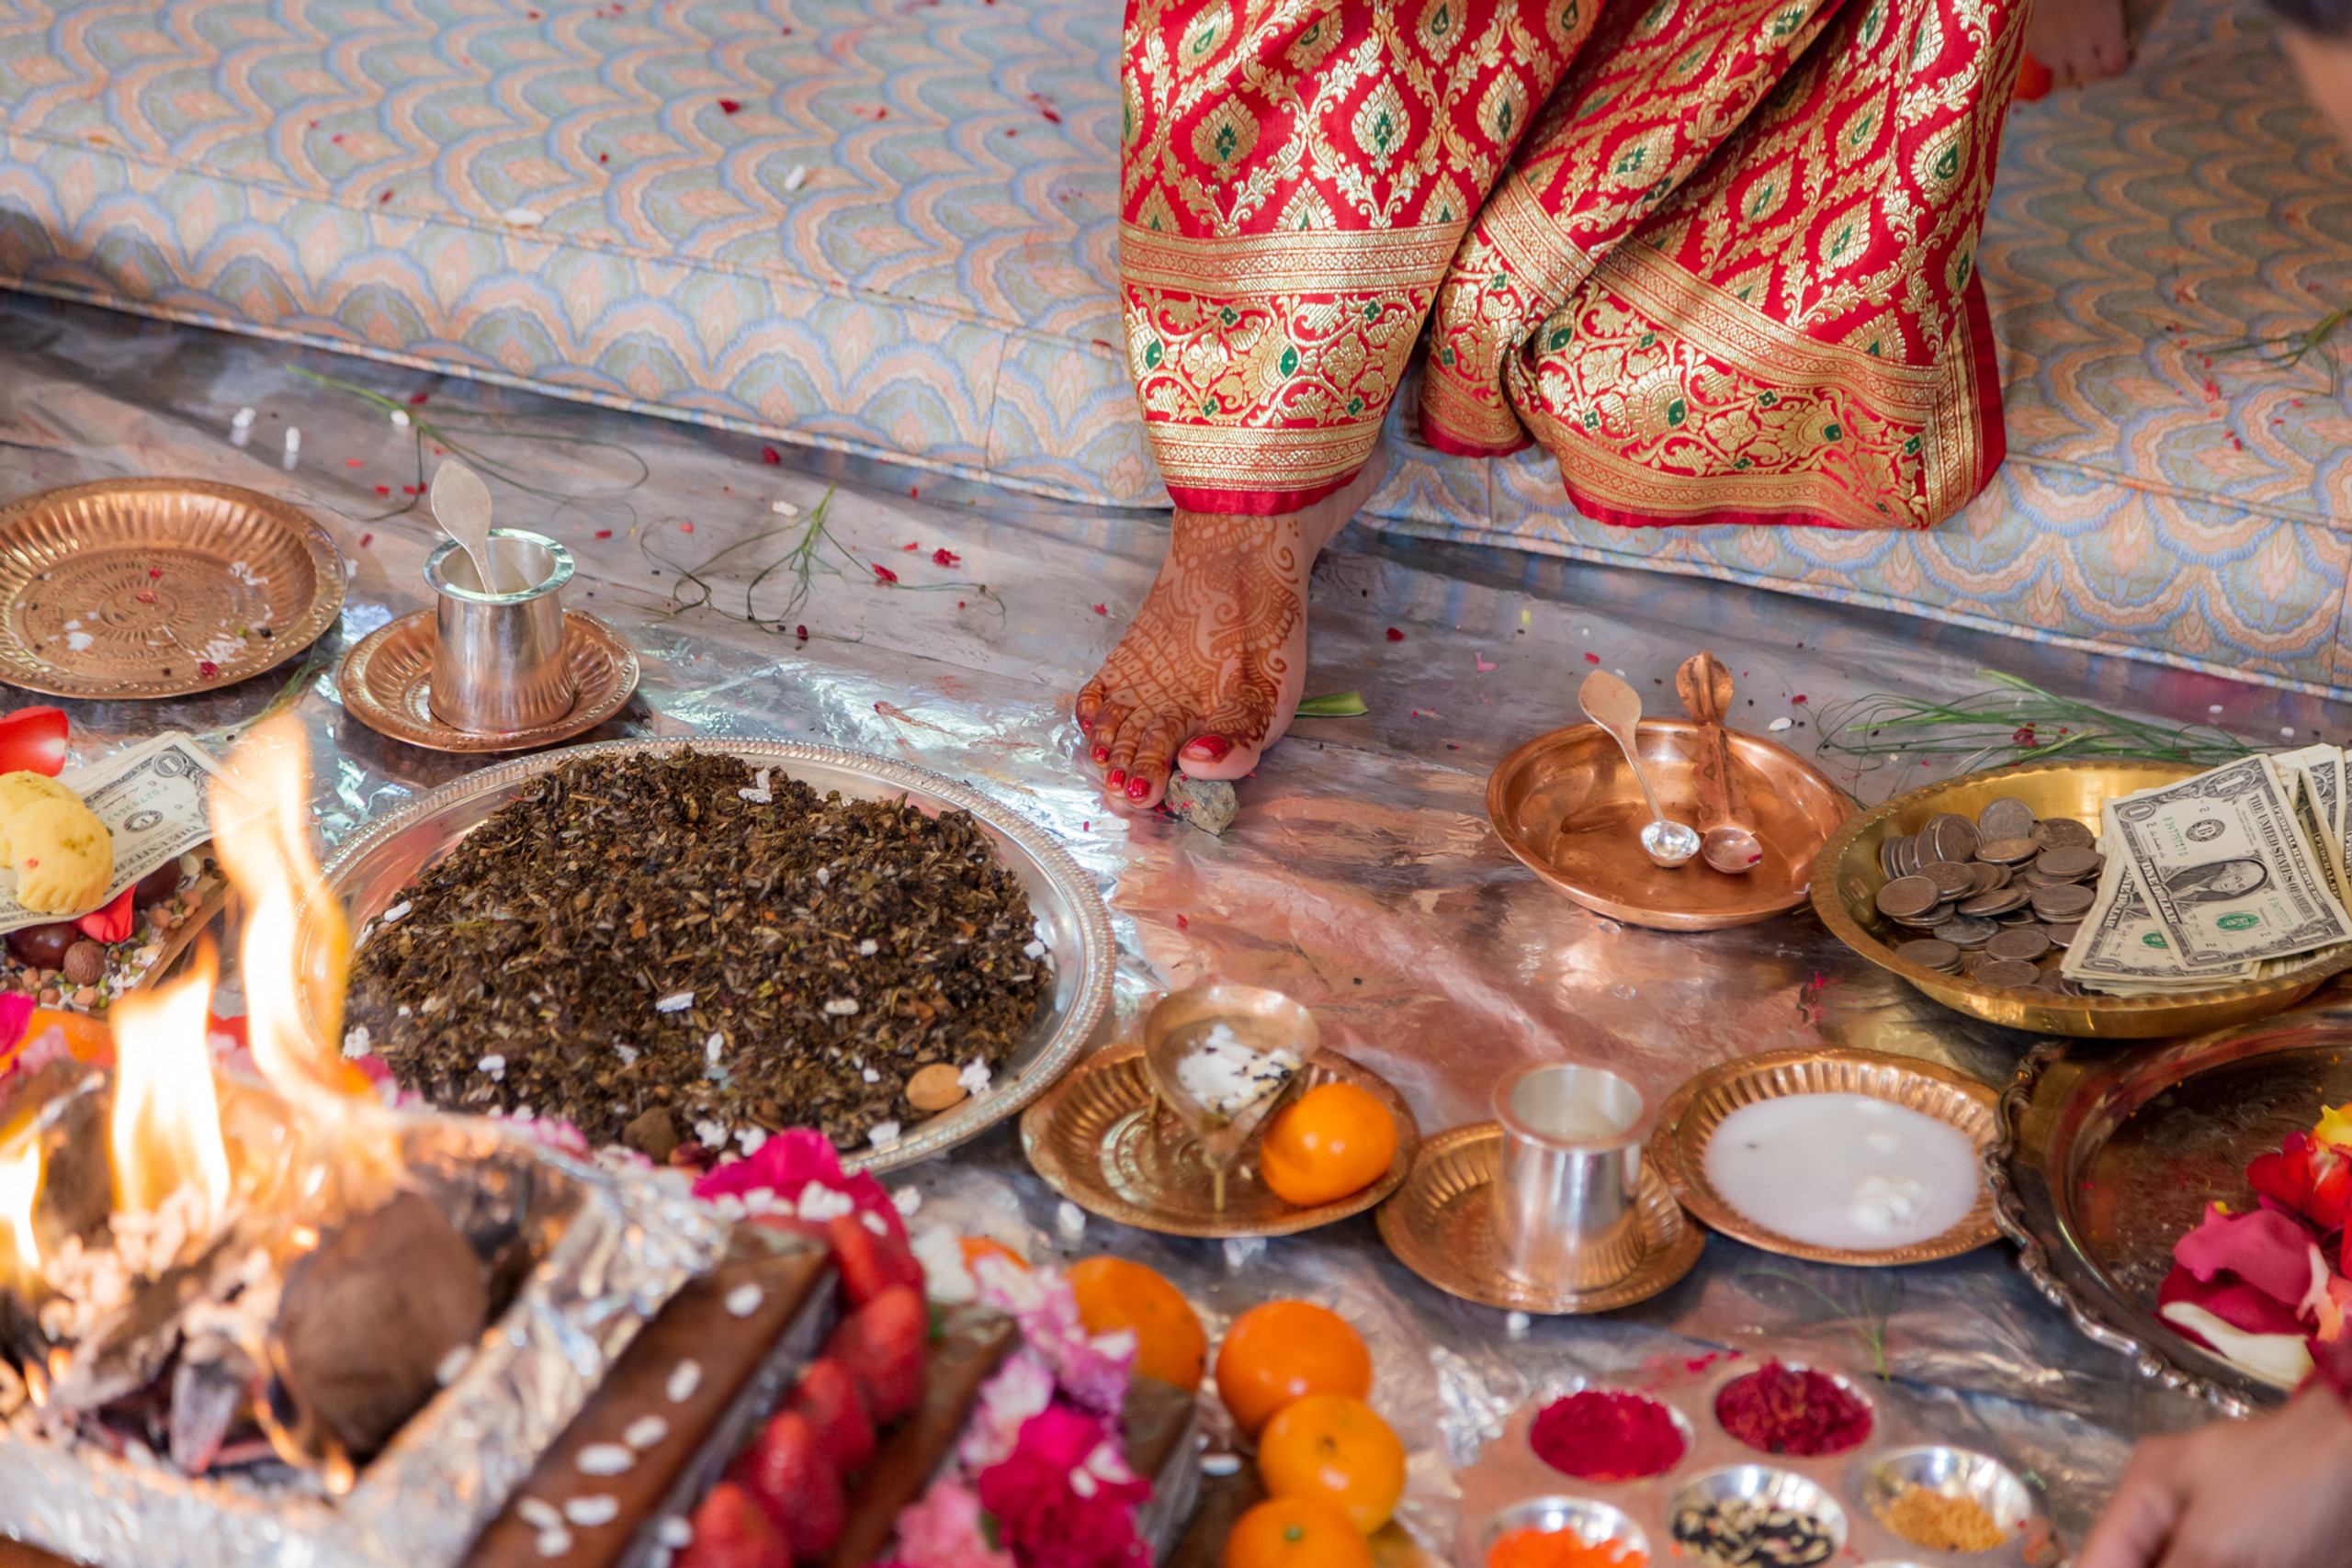 The bride performing a ritual during the Hindu Ceremony at the ISKCON of DC in Potomac, Maryland.